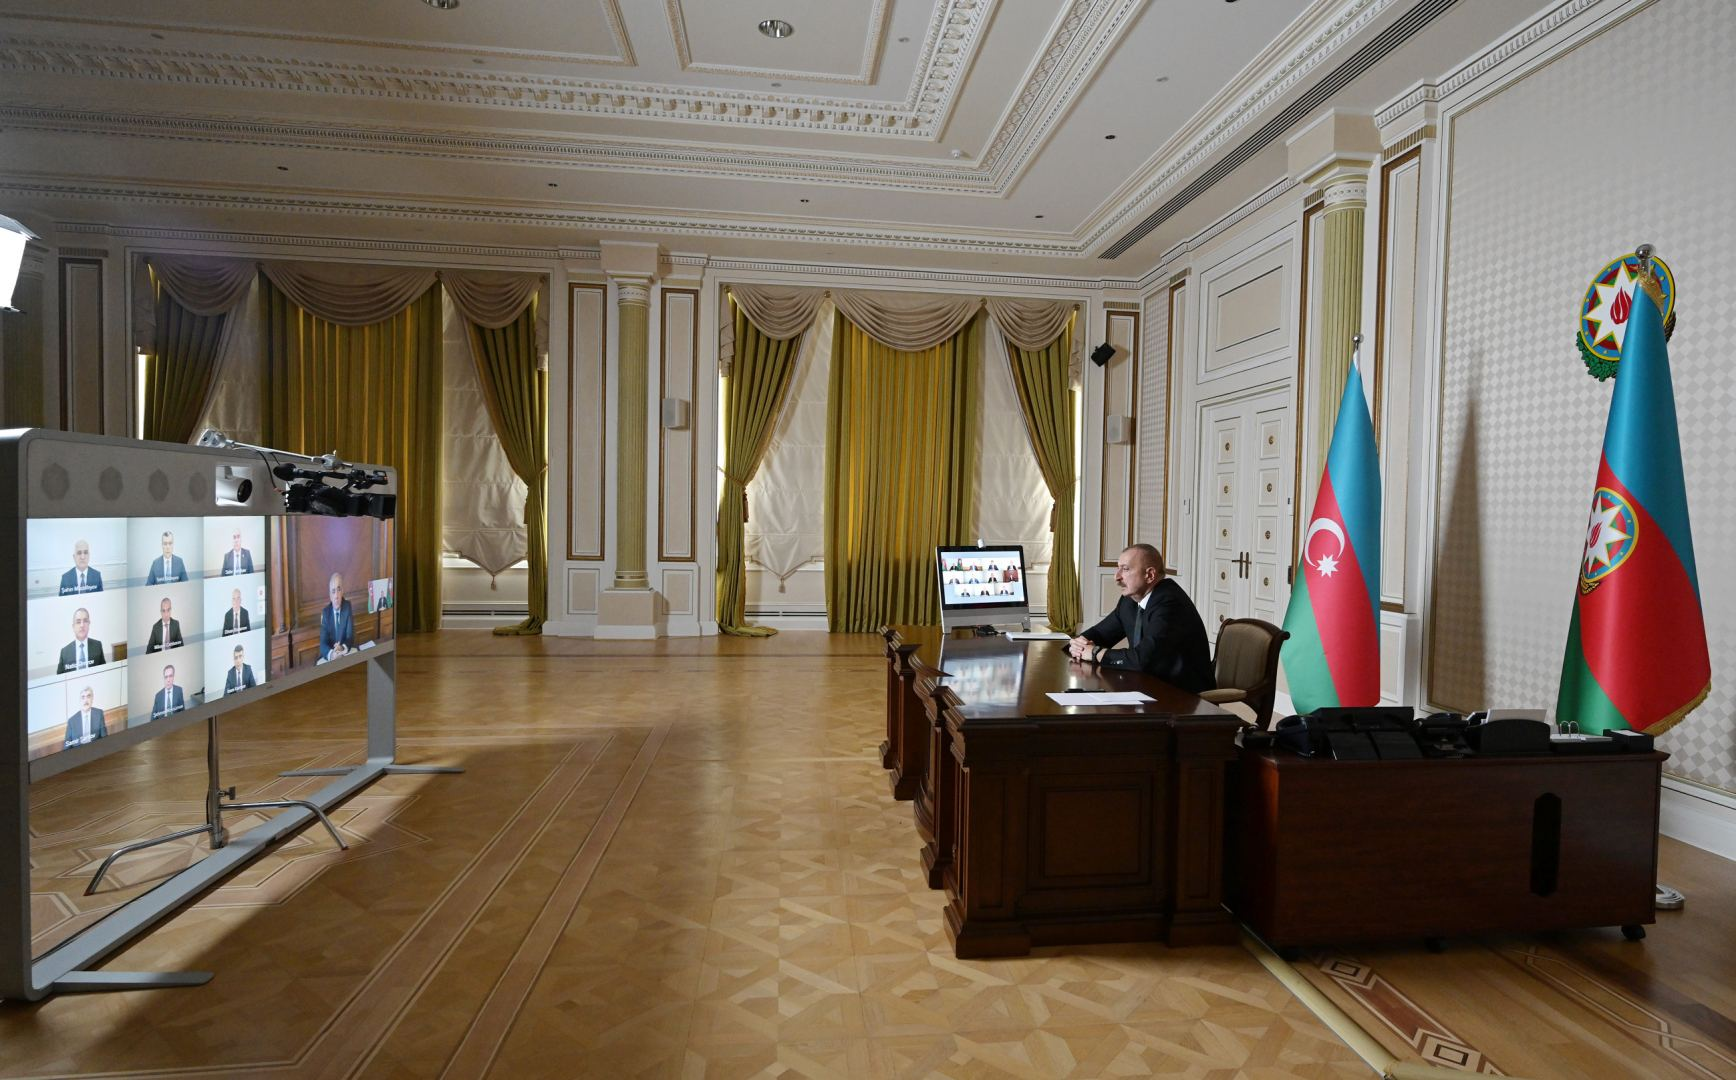 President Ilham Aliyev chaired Cabinet meeting on results of socio-economic development in first quarter of 2020 and future tasks (PHOTO)